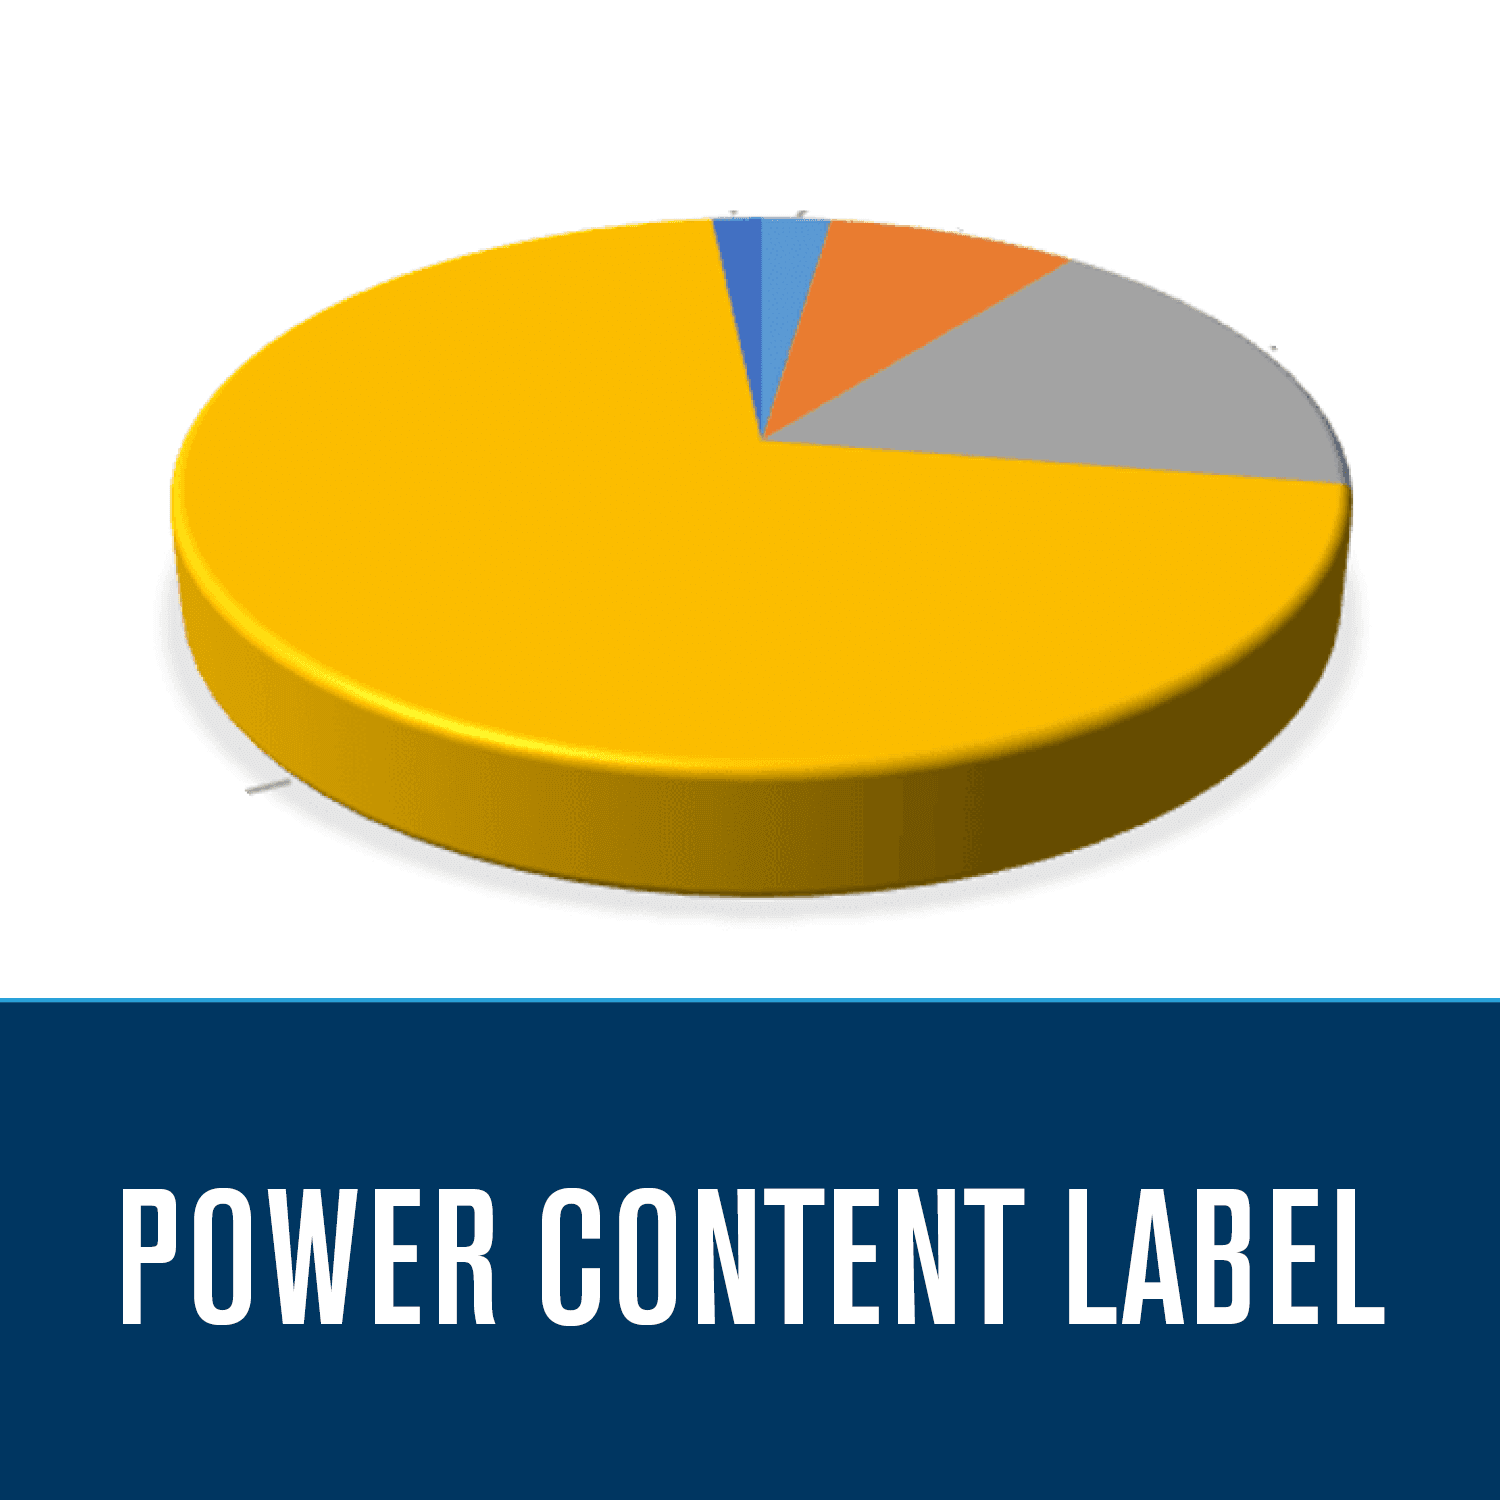 Power Content Label